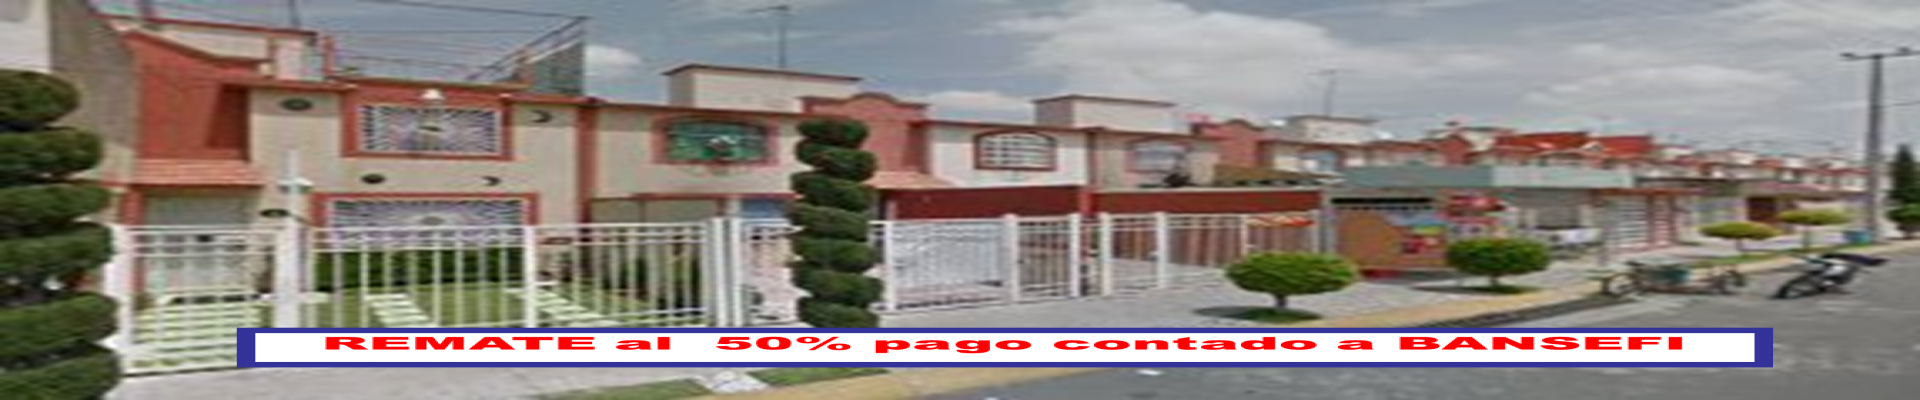 Ecatepec de Morelos,Estado de Mexico,Mexico,3 Bedrooms Bedrooms,3 BathroomsBathrooms,Apartamentos,DEPTO. 102,EDIF. A,COND. 5,5434